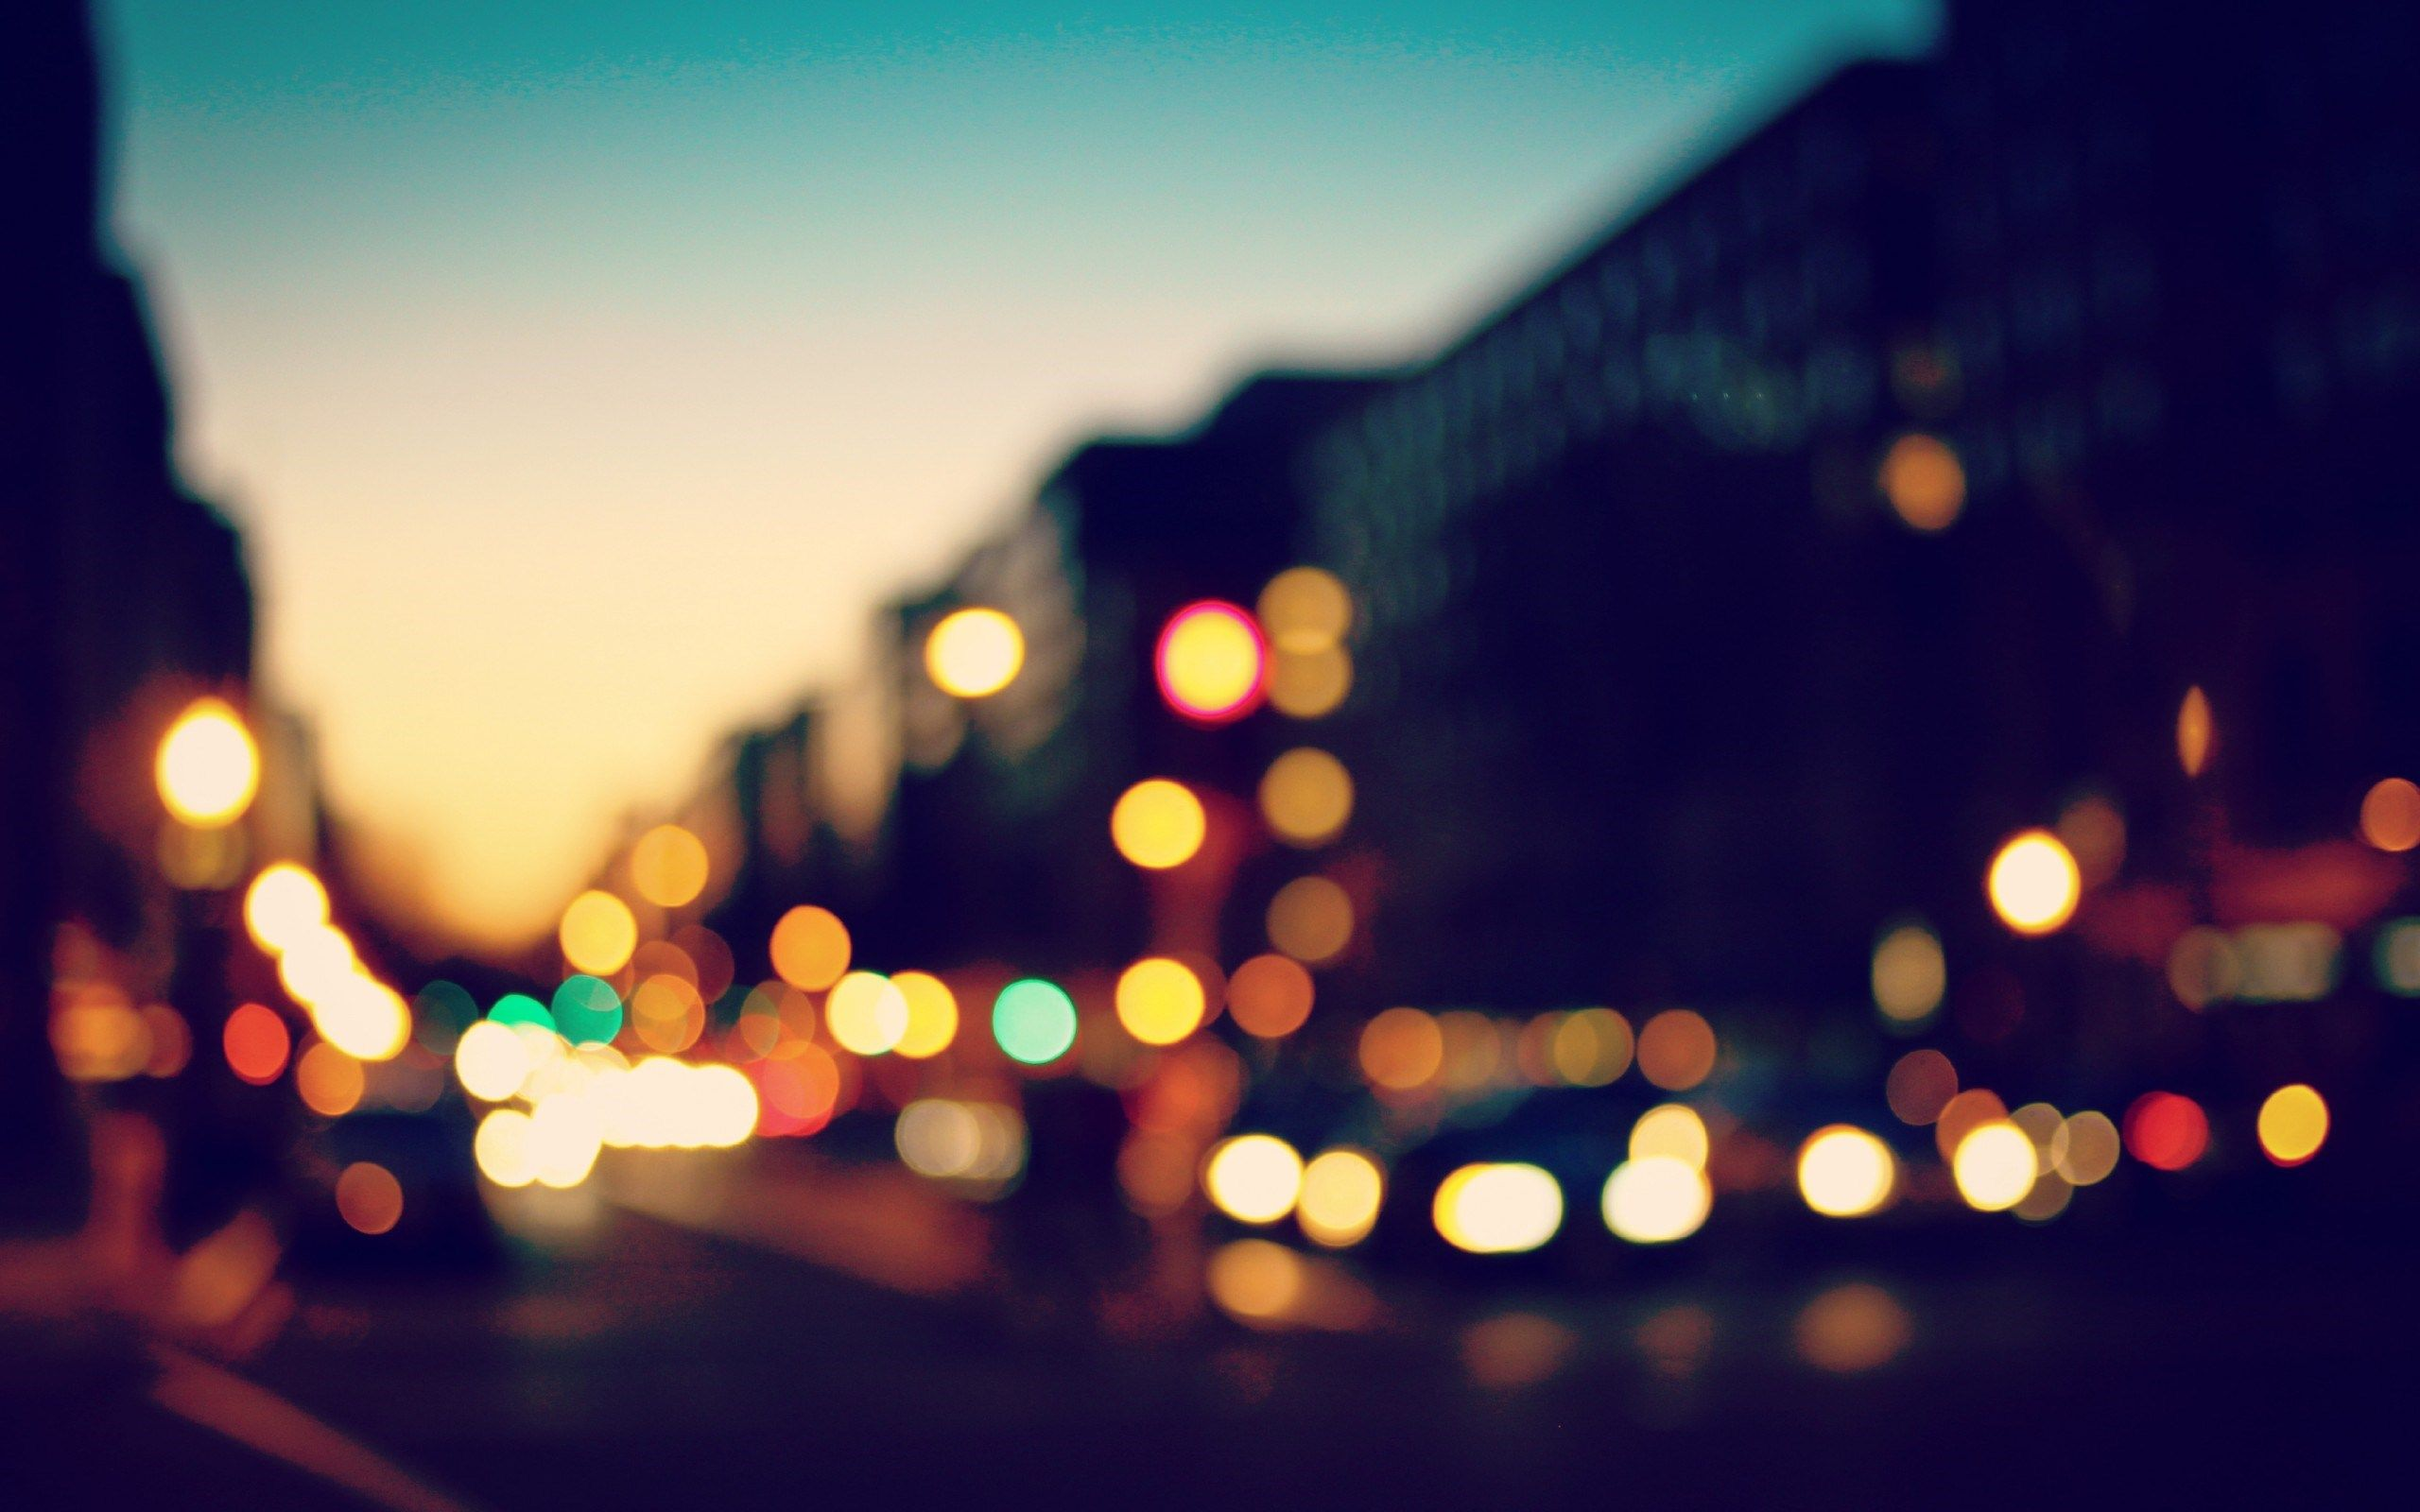 City Lights Wallpapers Android.